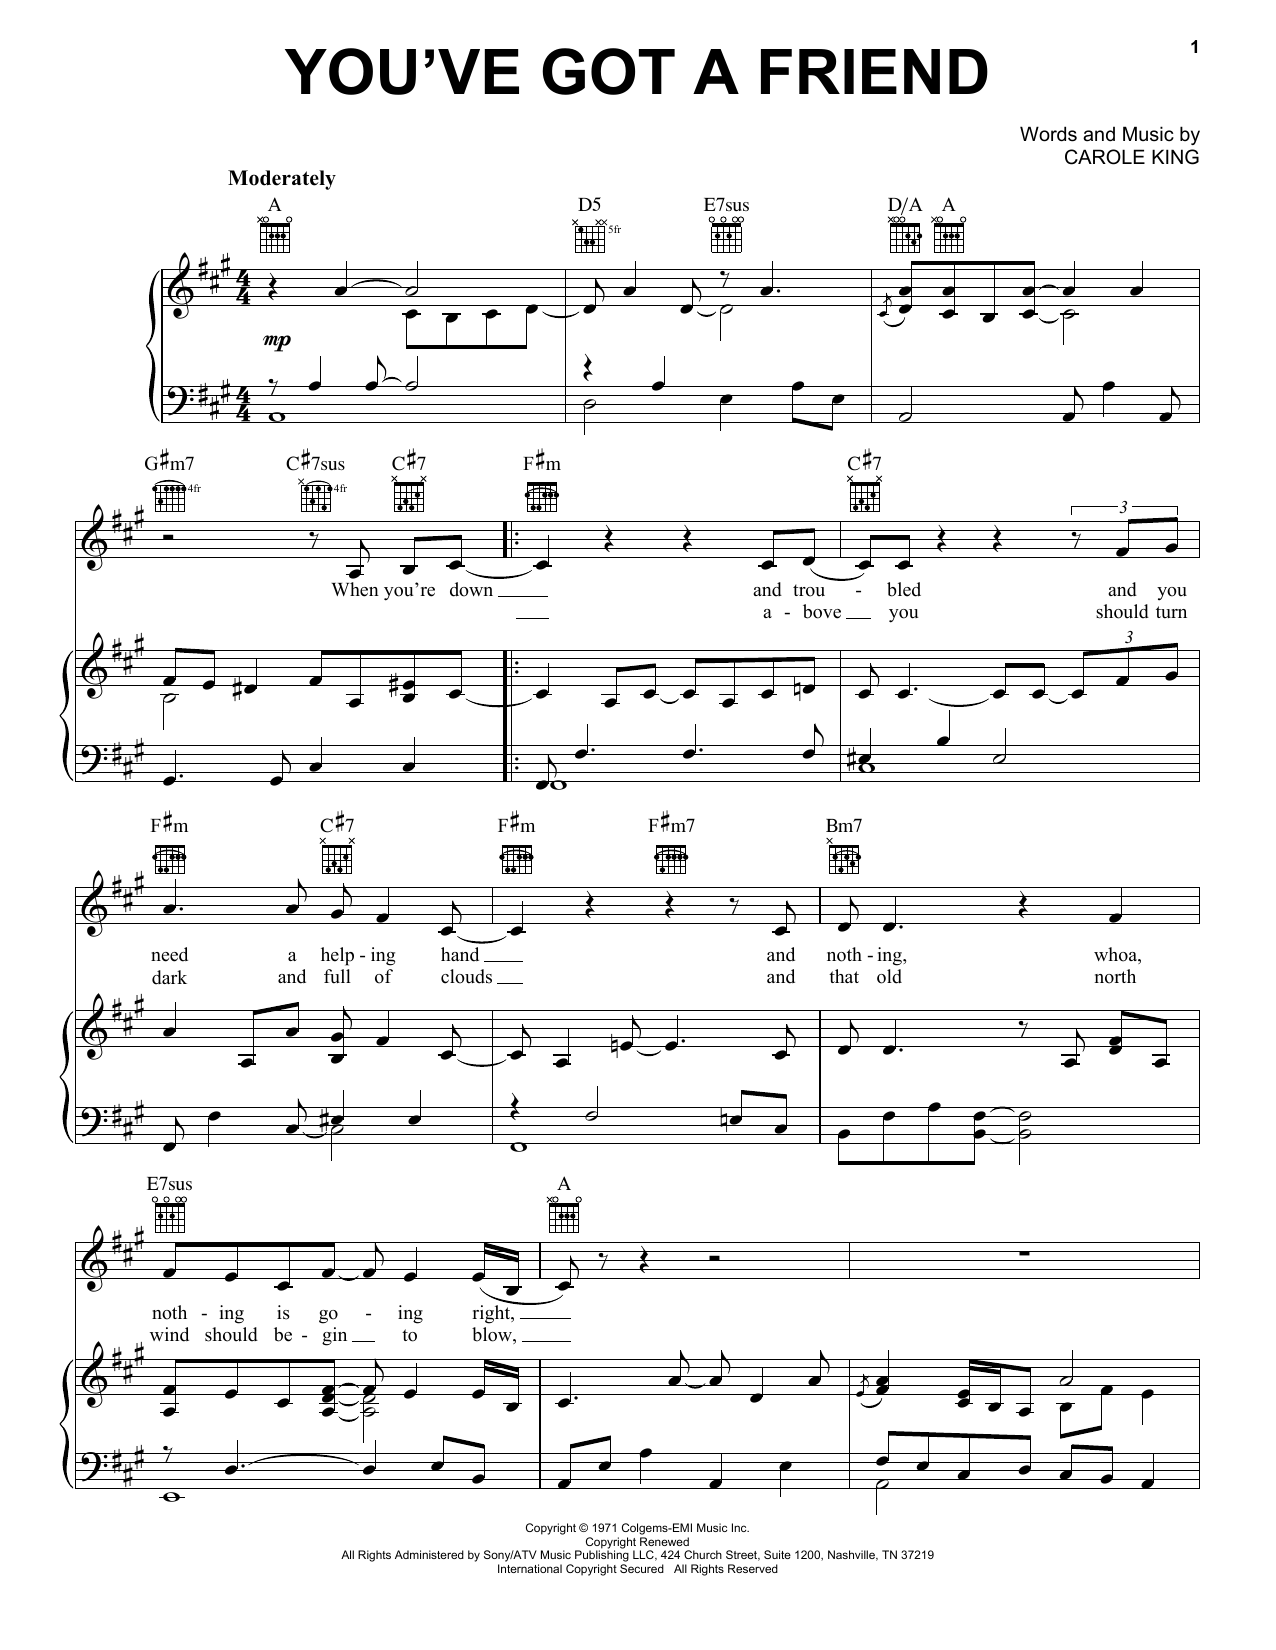 Carole King You've Got A Friend sheet music notes and chords